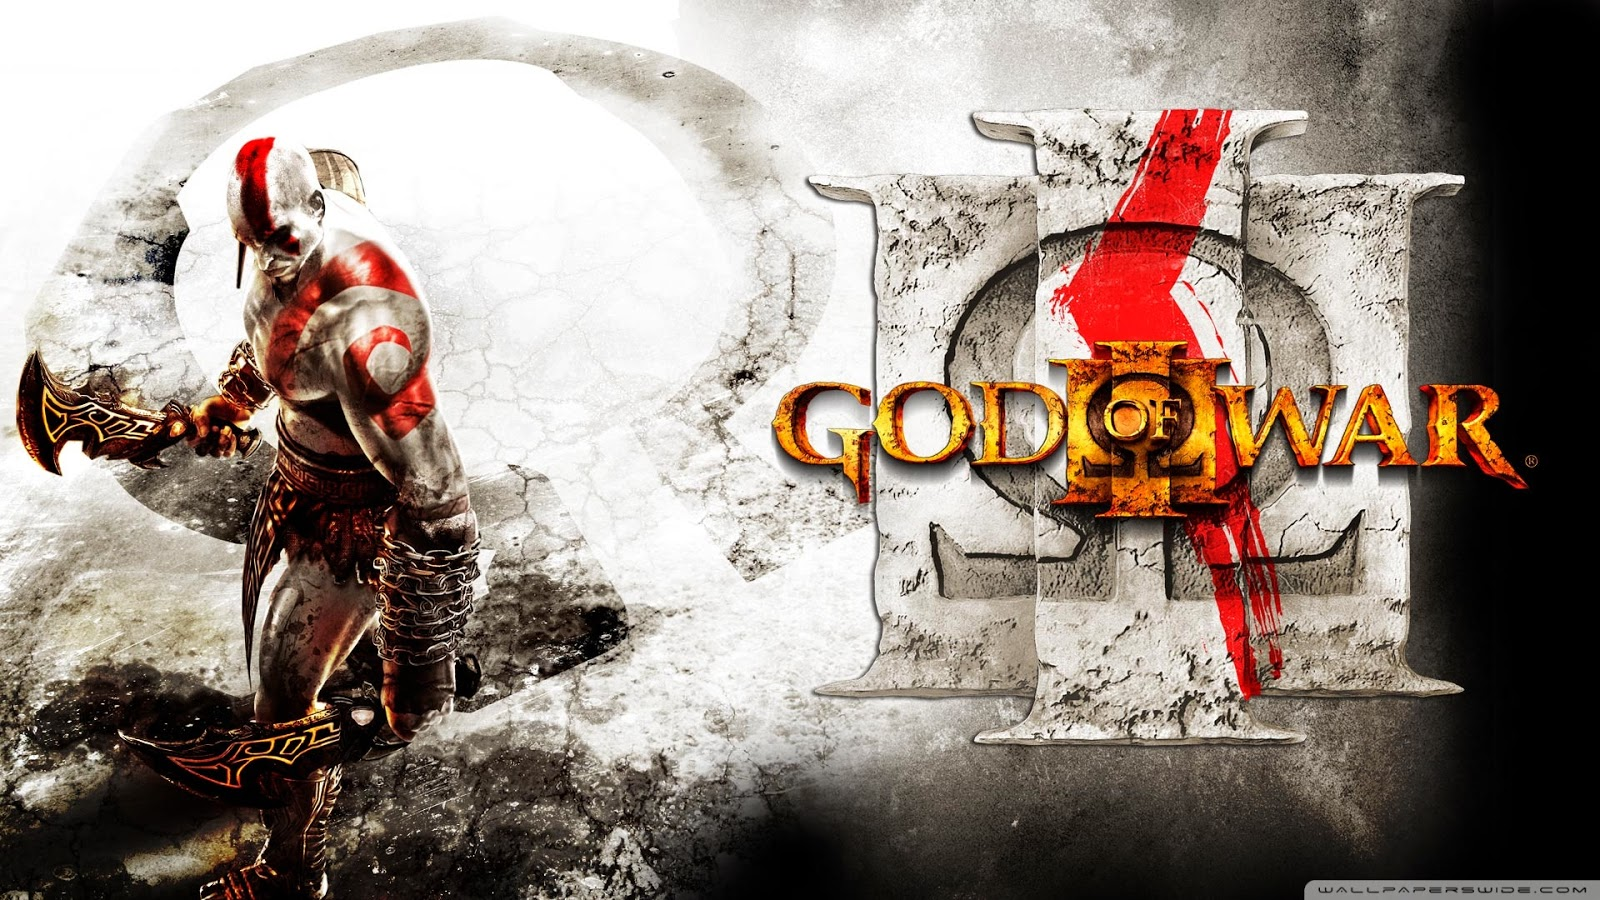 God of war 3 for pc free download highly compressed | System Tools ...